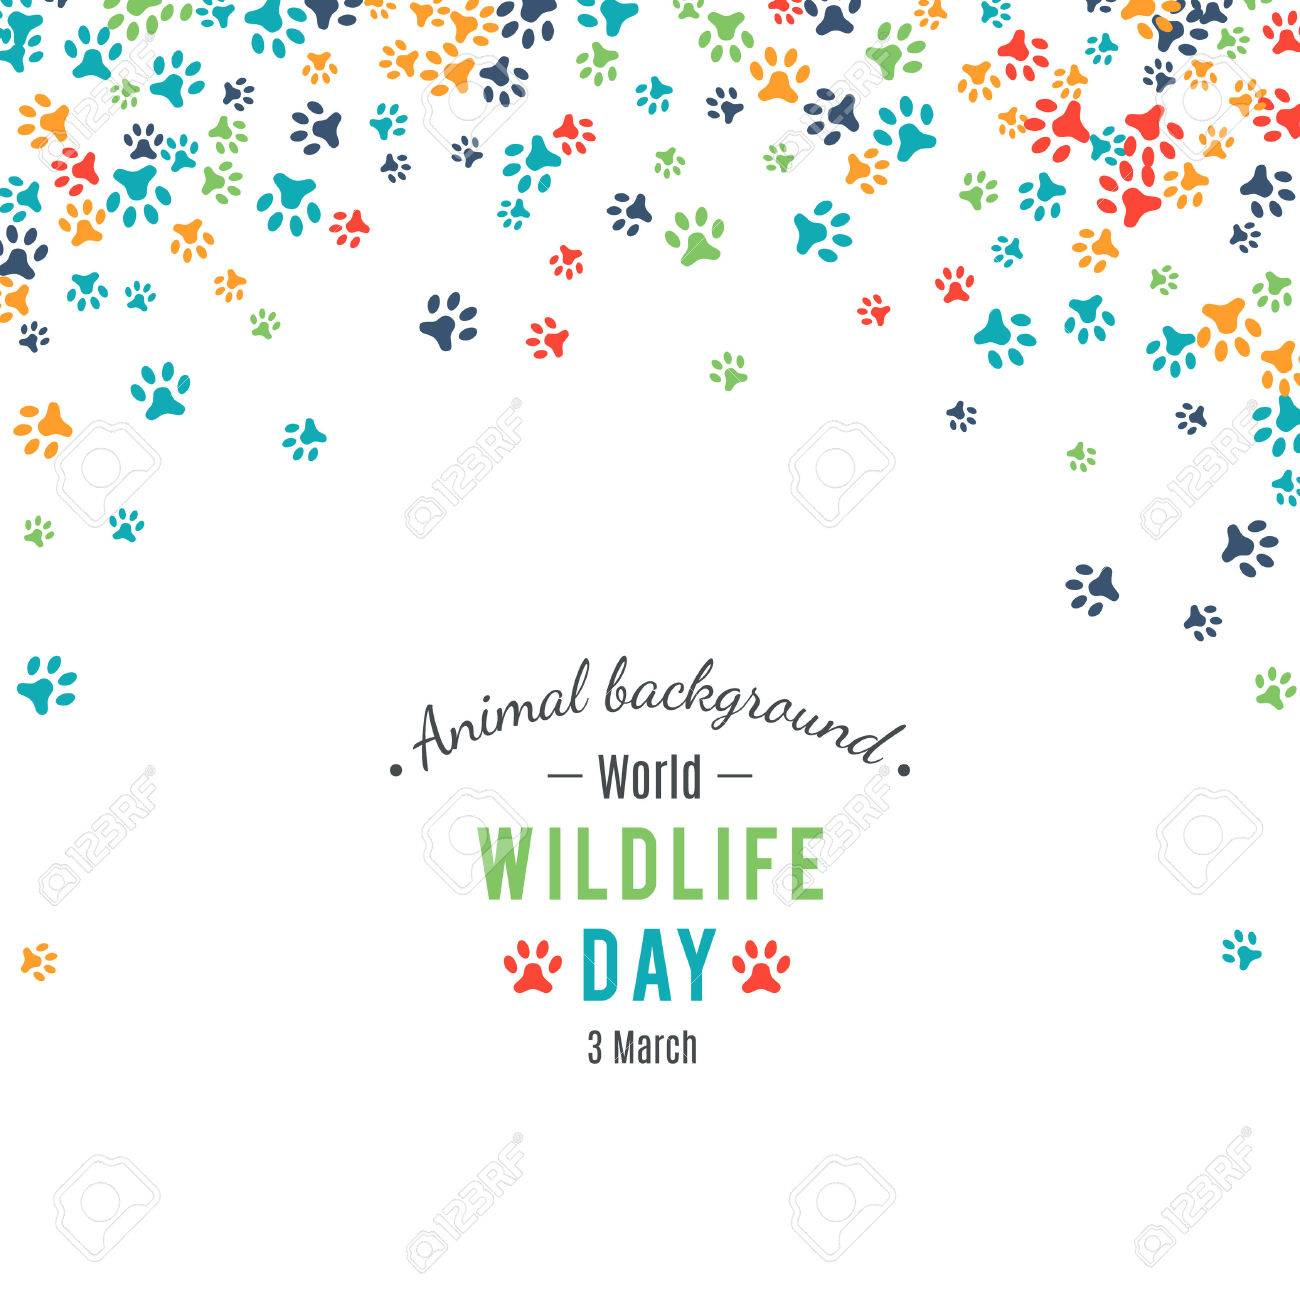 Wildlife day poster. Abstract banner promotion of world wild life day. Ecology and environment protection concept. Dog or cat pet footprints. Animal background. Footstep. Vector illustration - 52613748